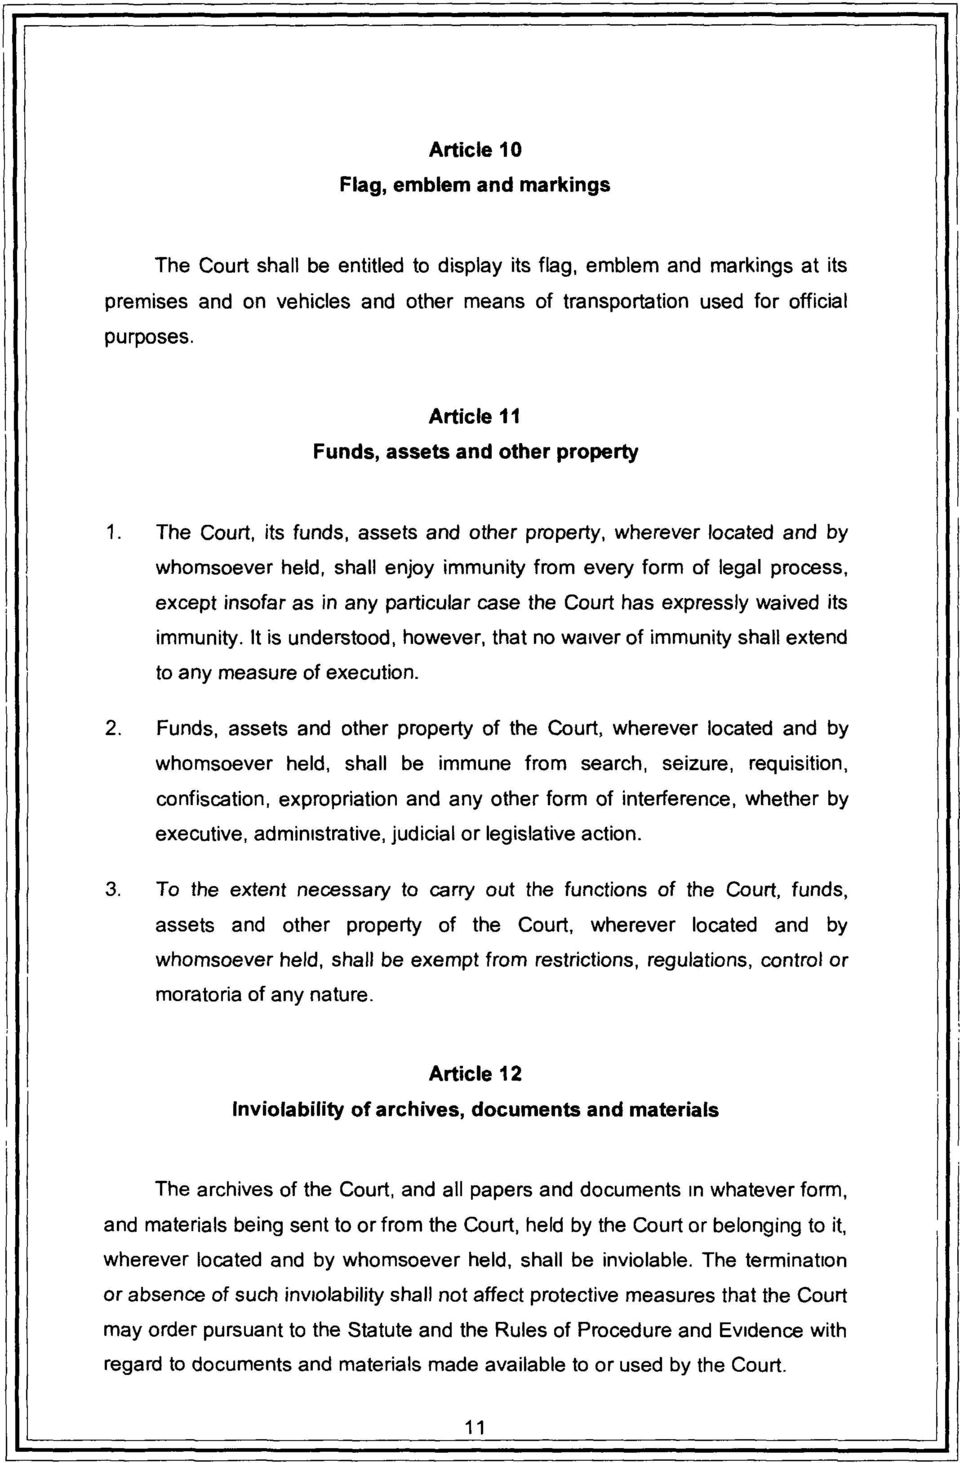 The Court, its funds, assets and other property, wherever located and by whomsoever held, shall enjoy immunity from every form of legal process, except insofar as in any particular case the Court has